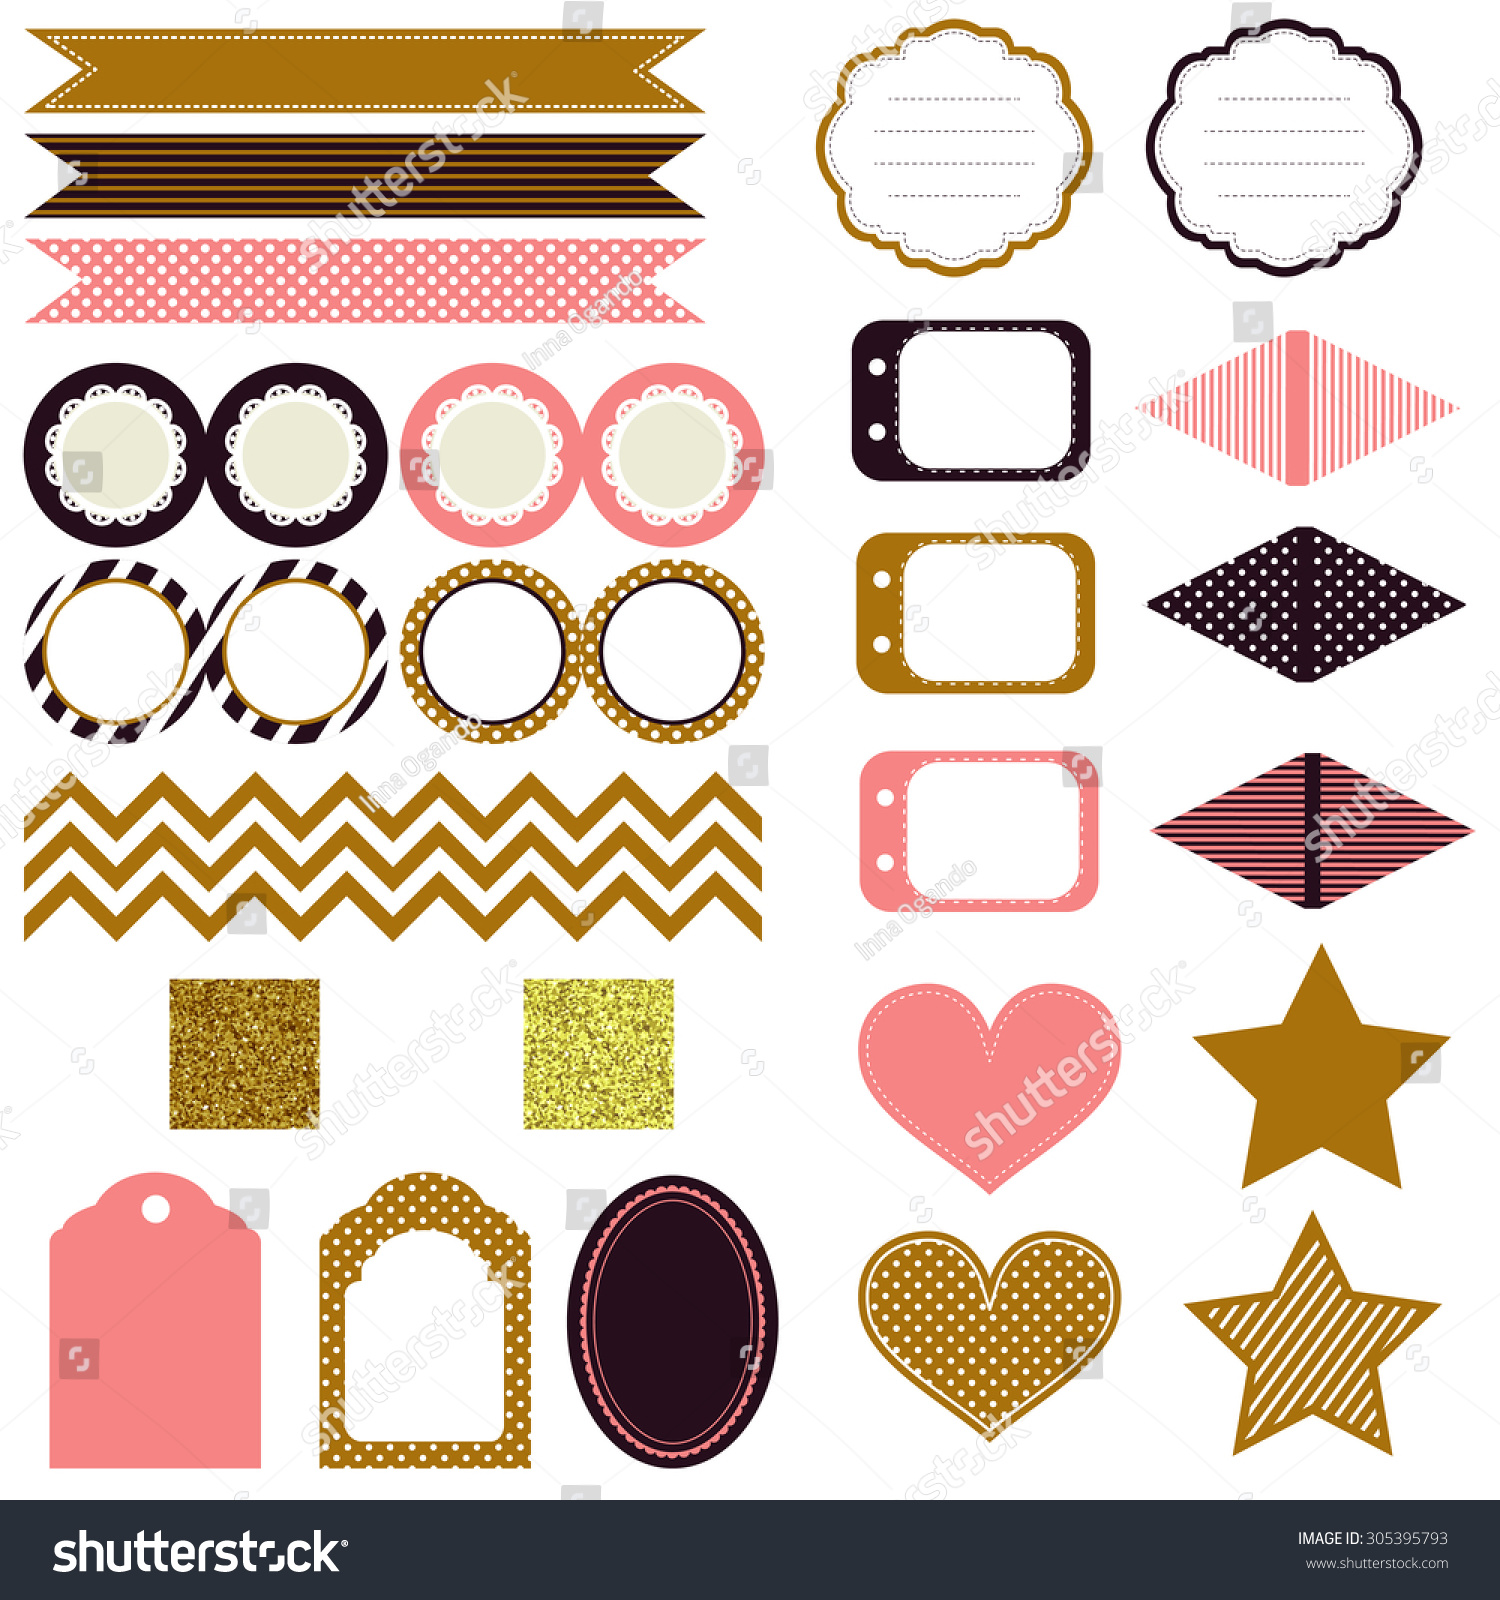 celebration birthday party supplies collection golden glitter party ideas include golden glitter pattern